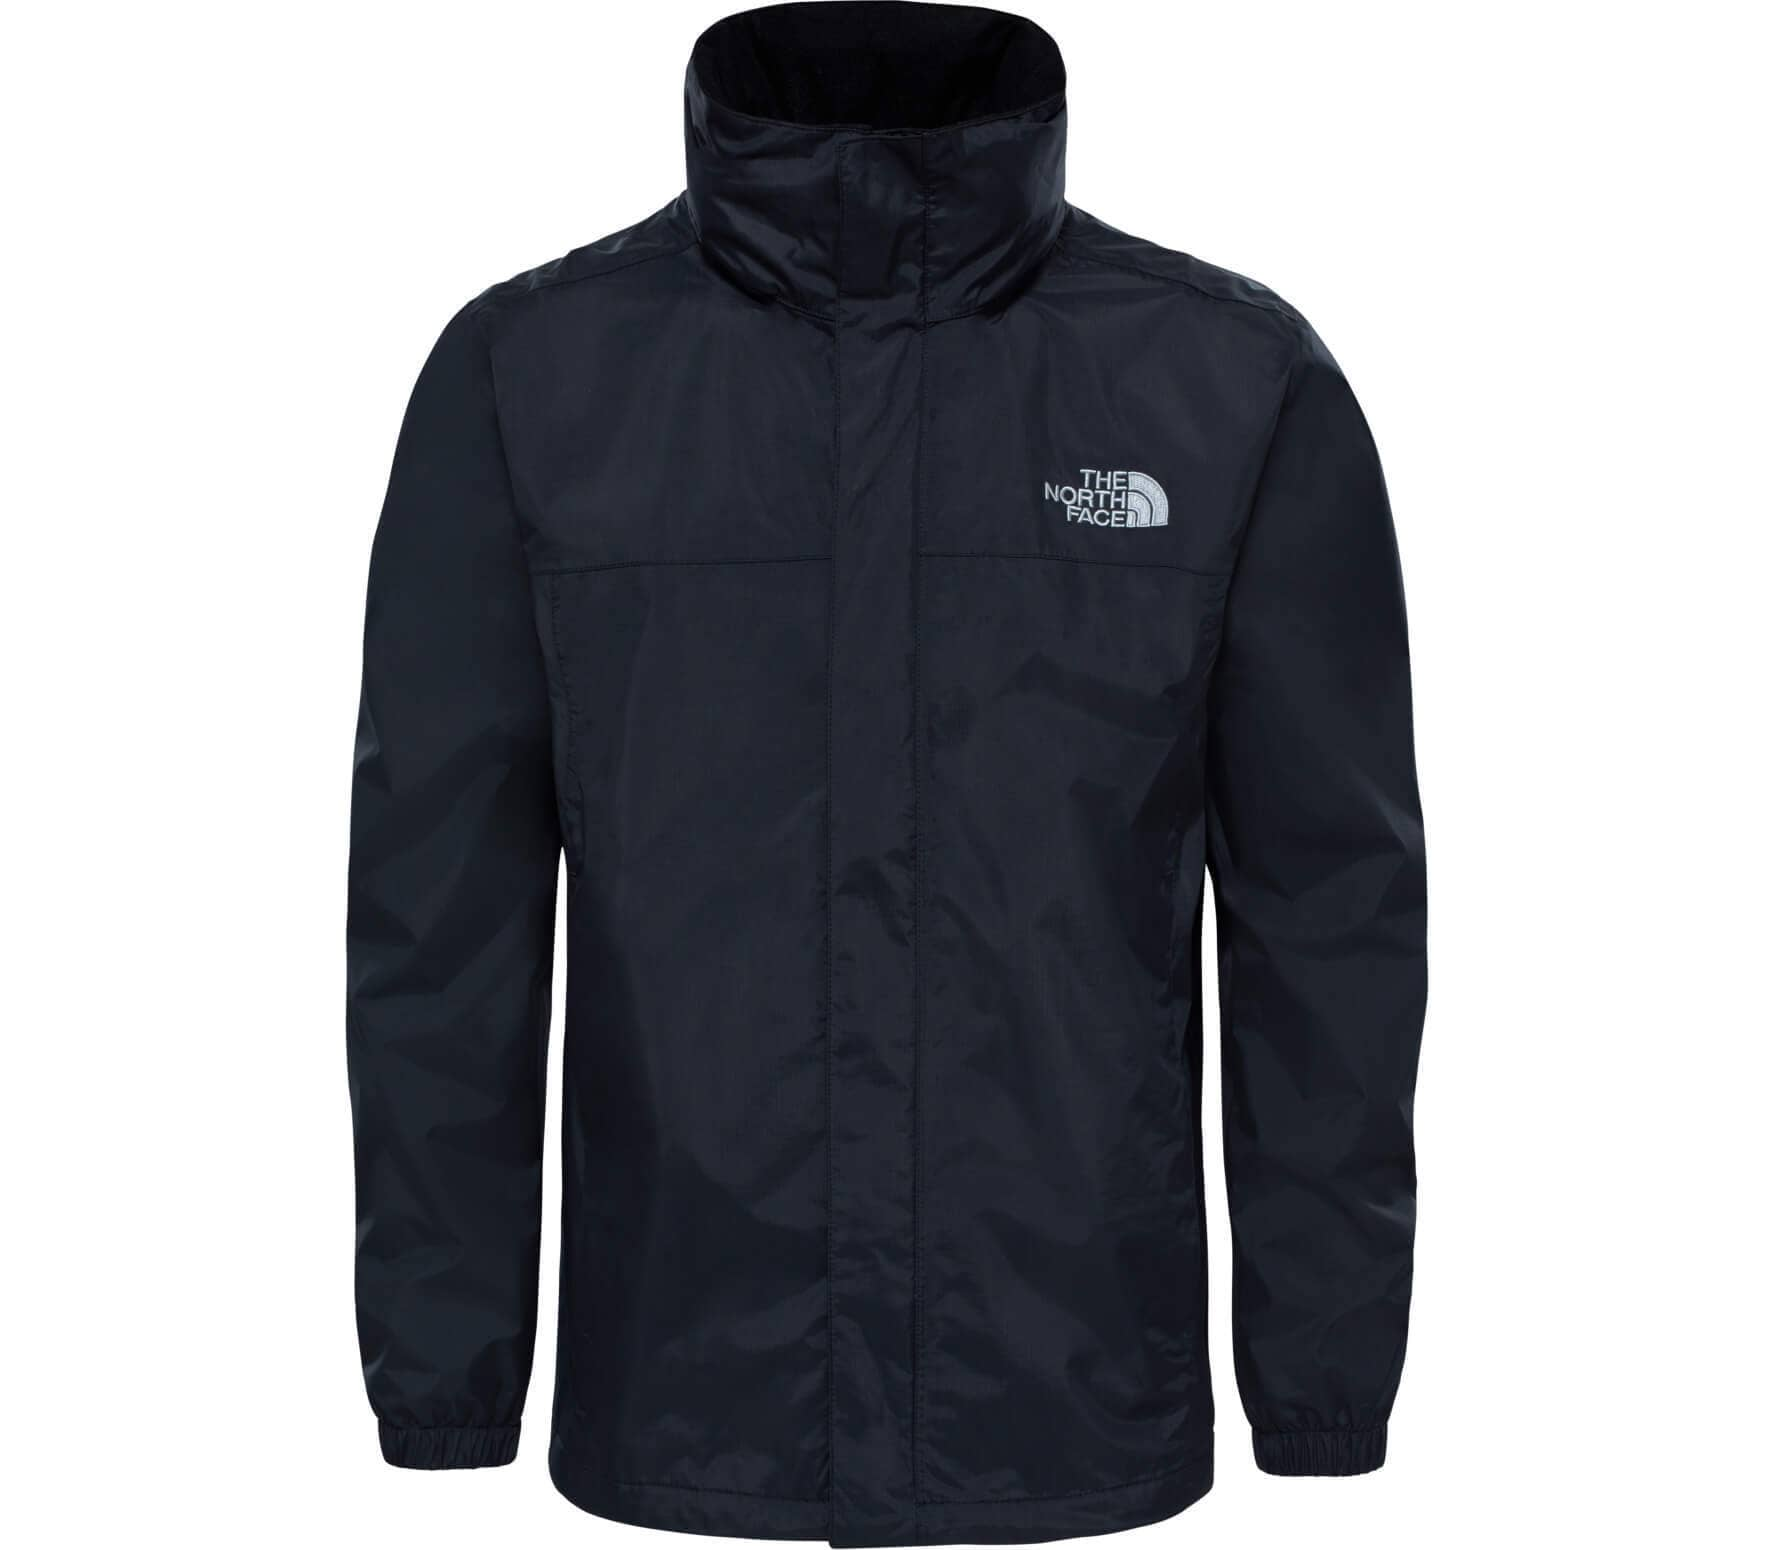 ff83c43546 The North Face - Resolve 2 Herren Regenjacke (schwarz) im Online ...